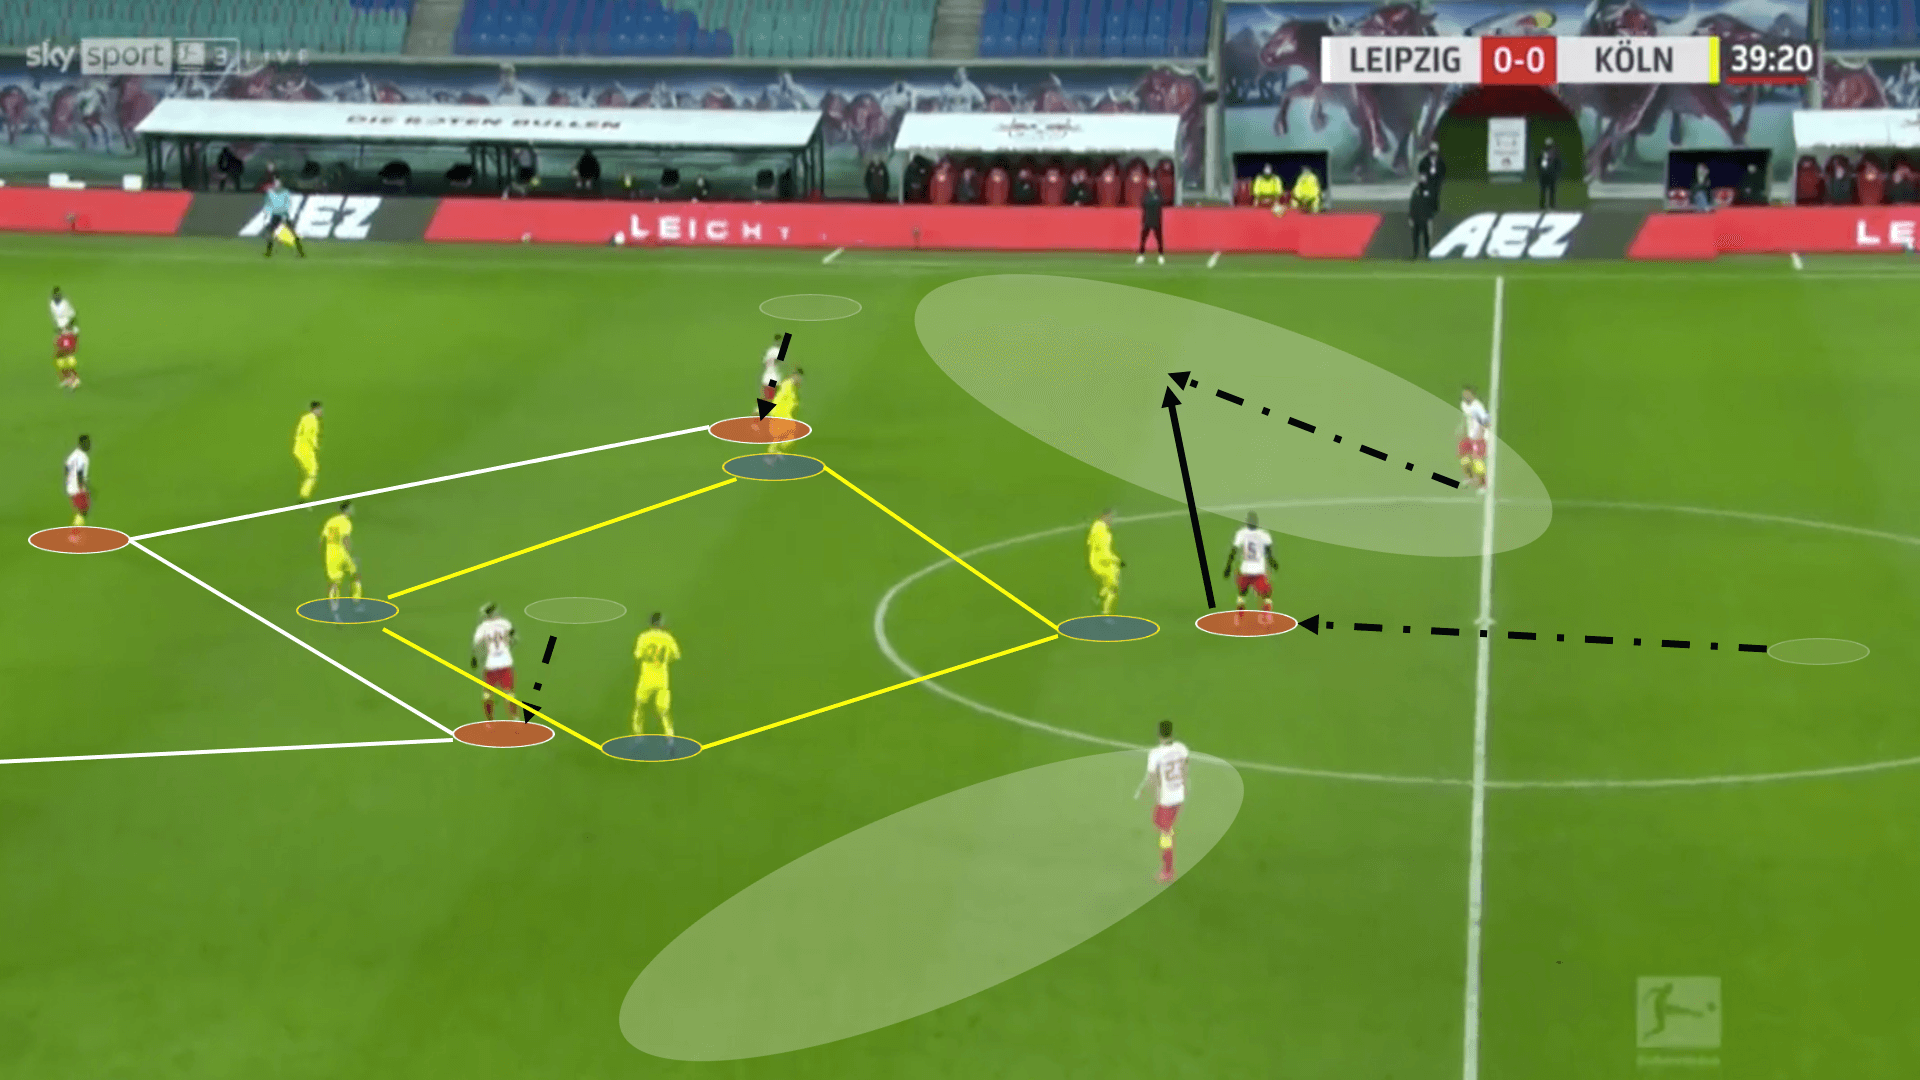 Bundesliga 2020/21 - RB Leipzig vs FC Köln - tactical analysis - tactics